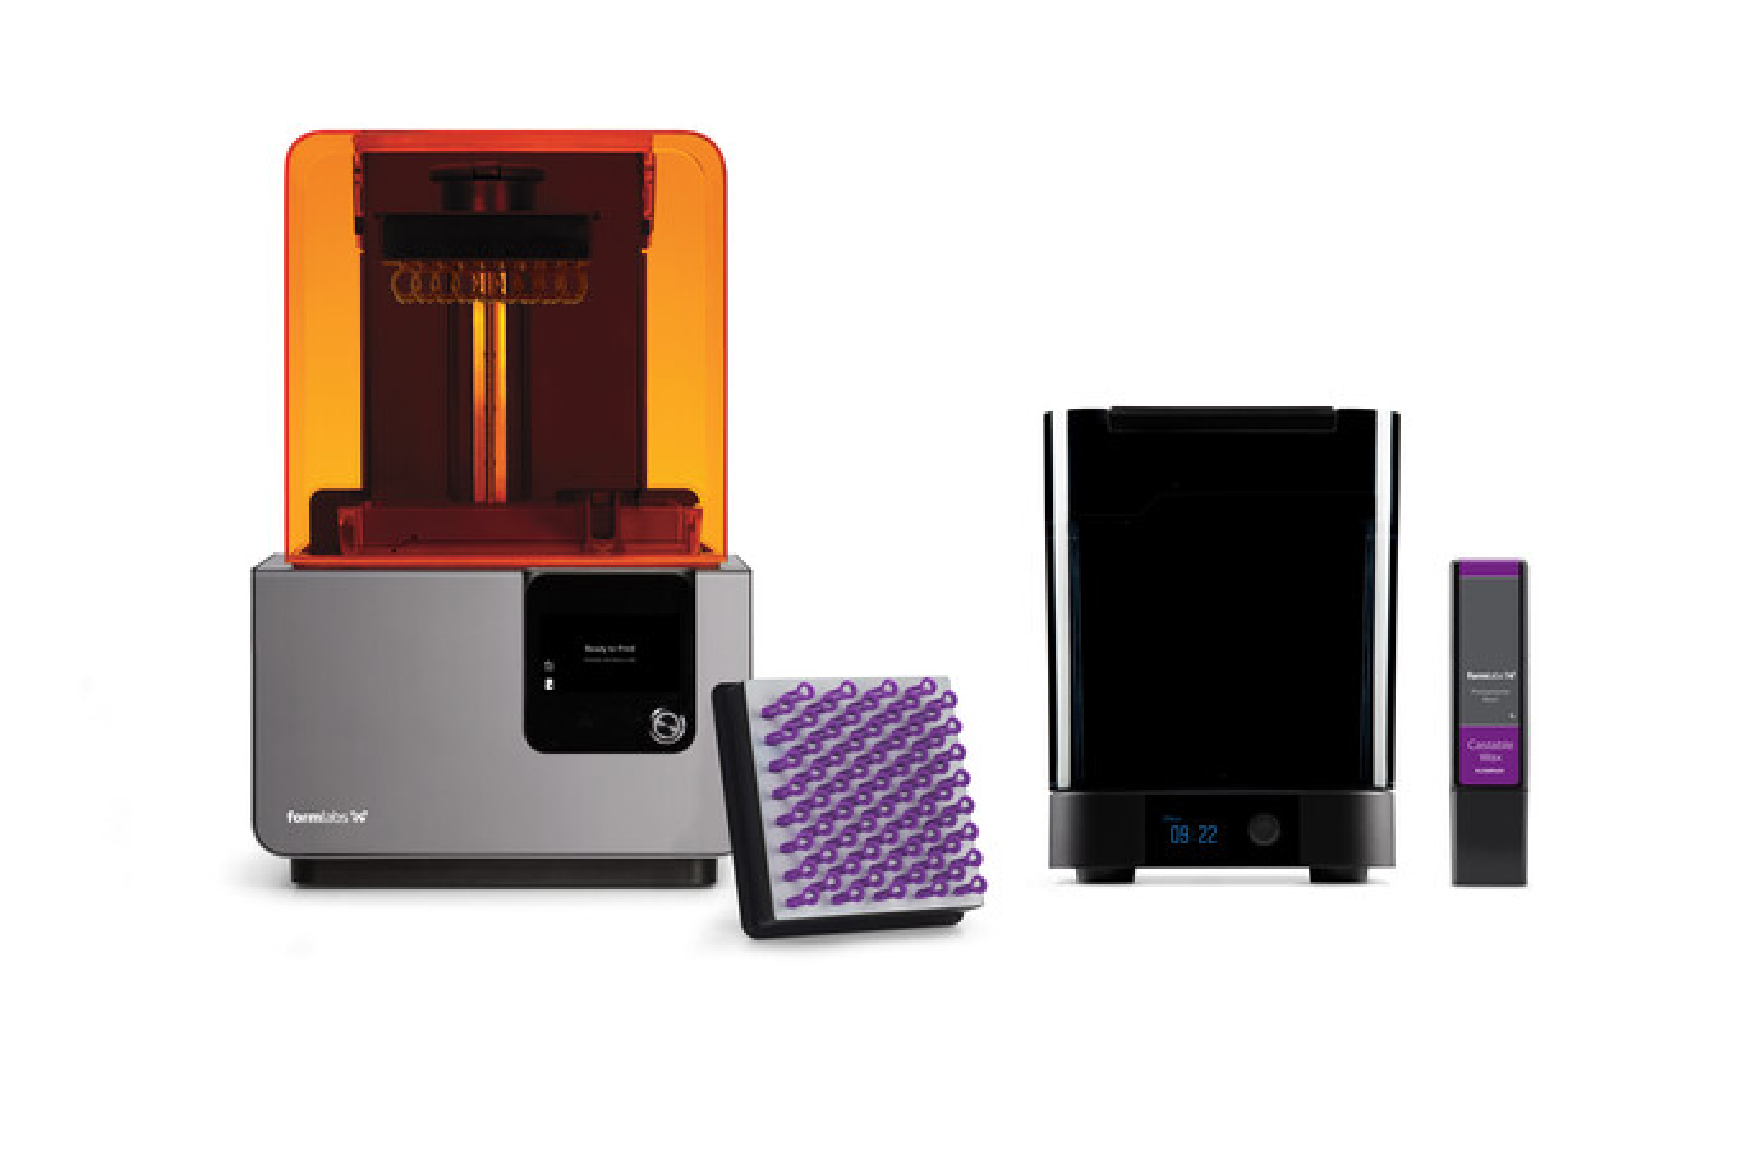 A complete setup for 3D printing Castable Wax: the Form 2 desktop stereolithography 3D printer, Form Wash automated wash station, a cartridge of Castable Wax Resin, and a build platform of printed parts.